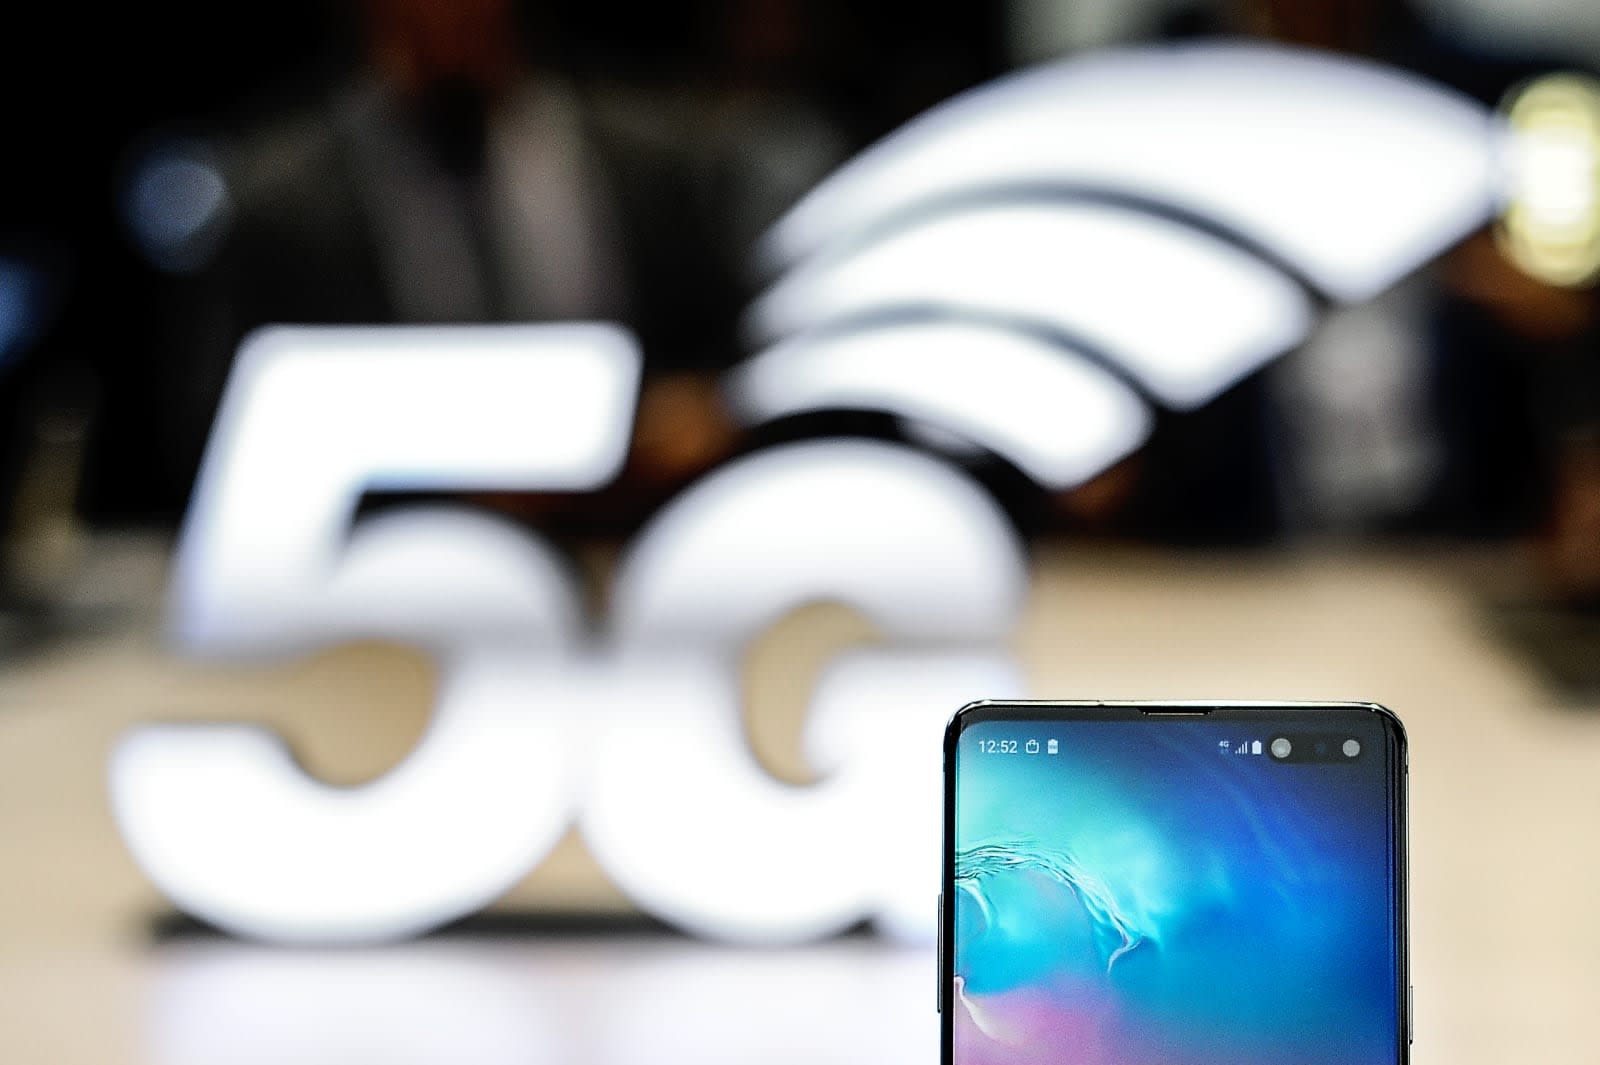 5G Speeds Australia real 5g is nearly three times faster than lte, but not